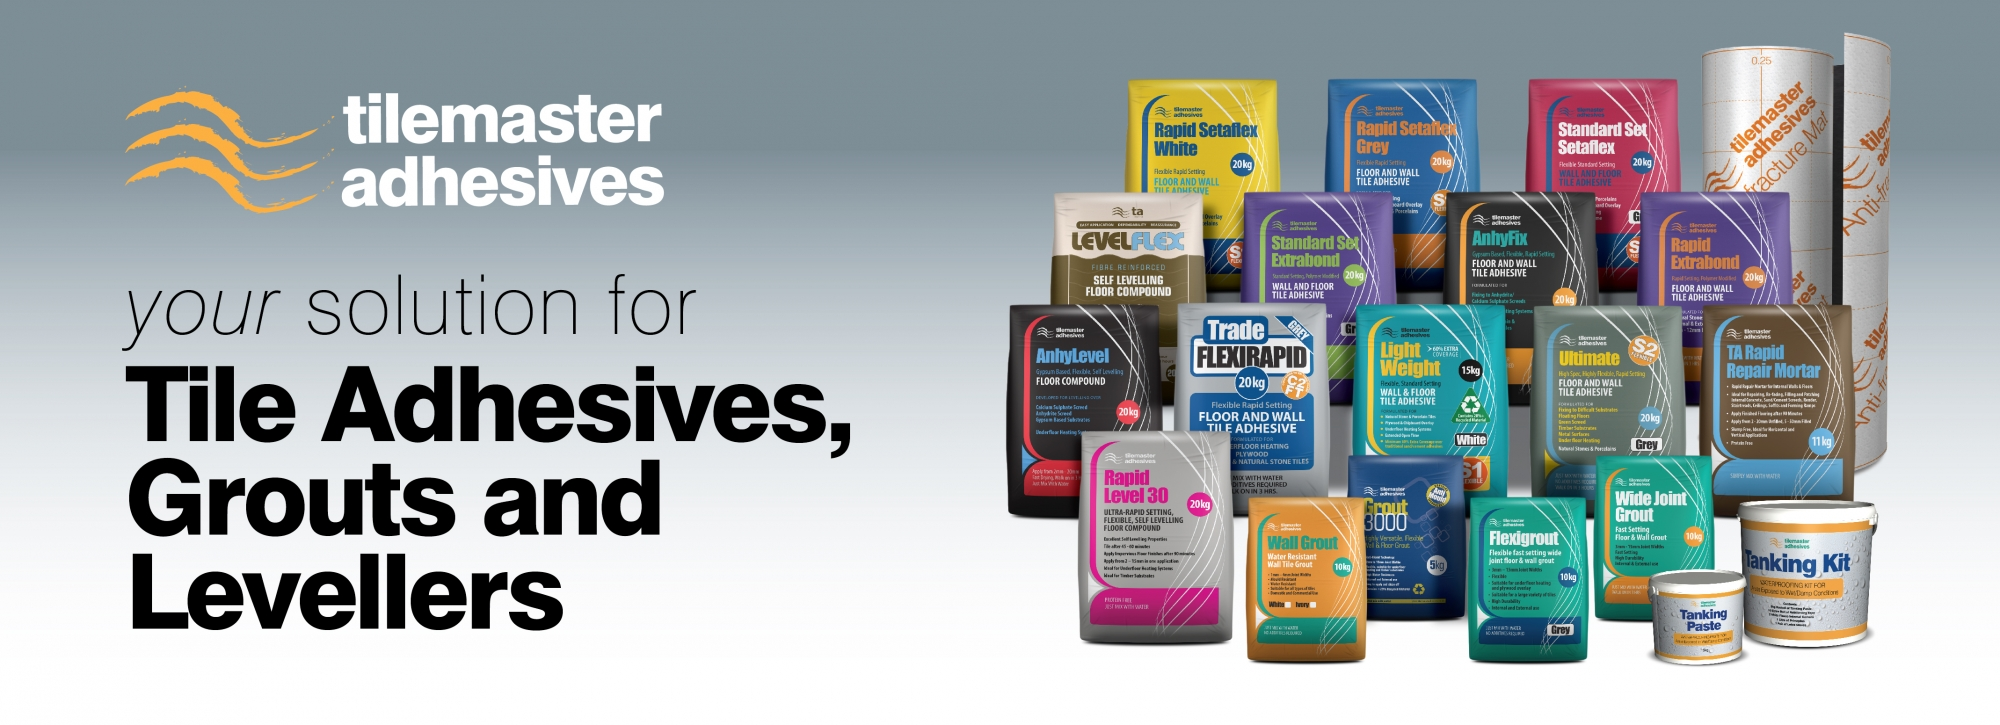 Tilemaster Adhesives Service, support and delivery nationwide!